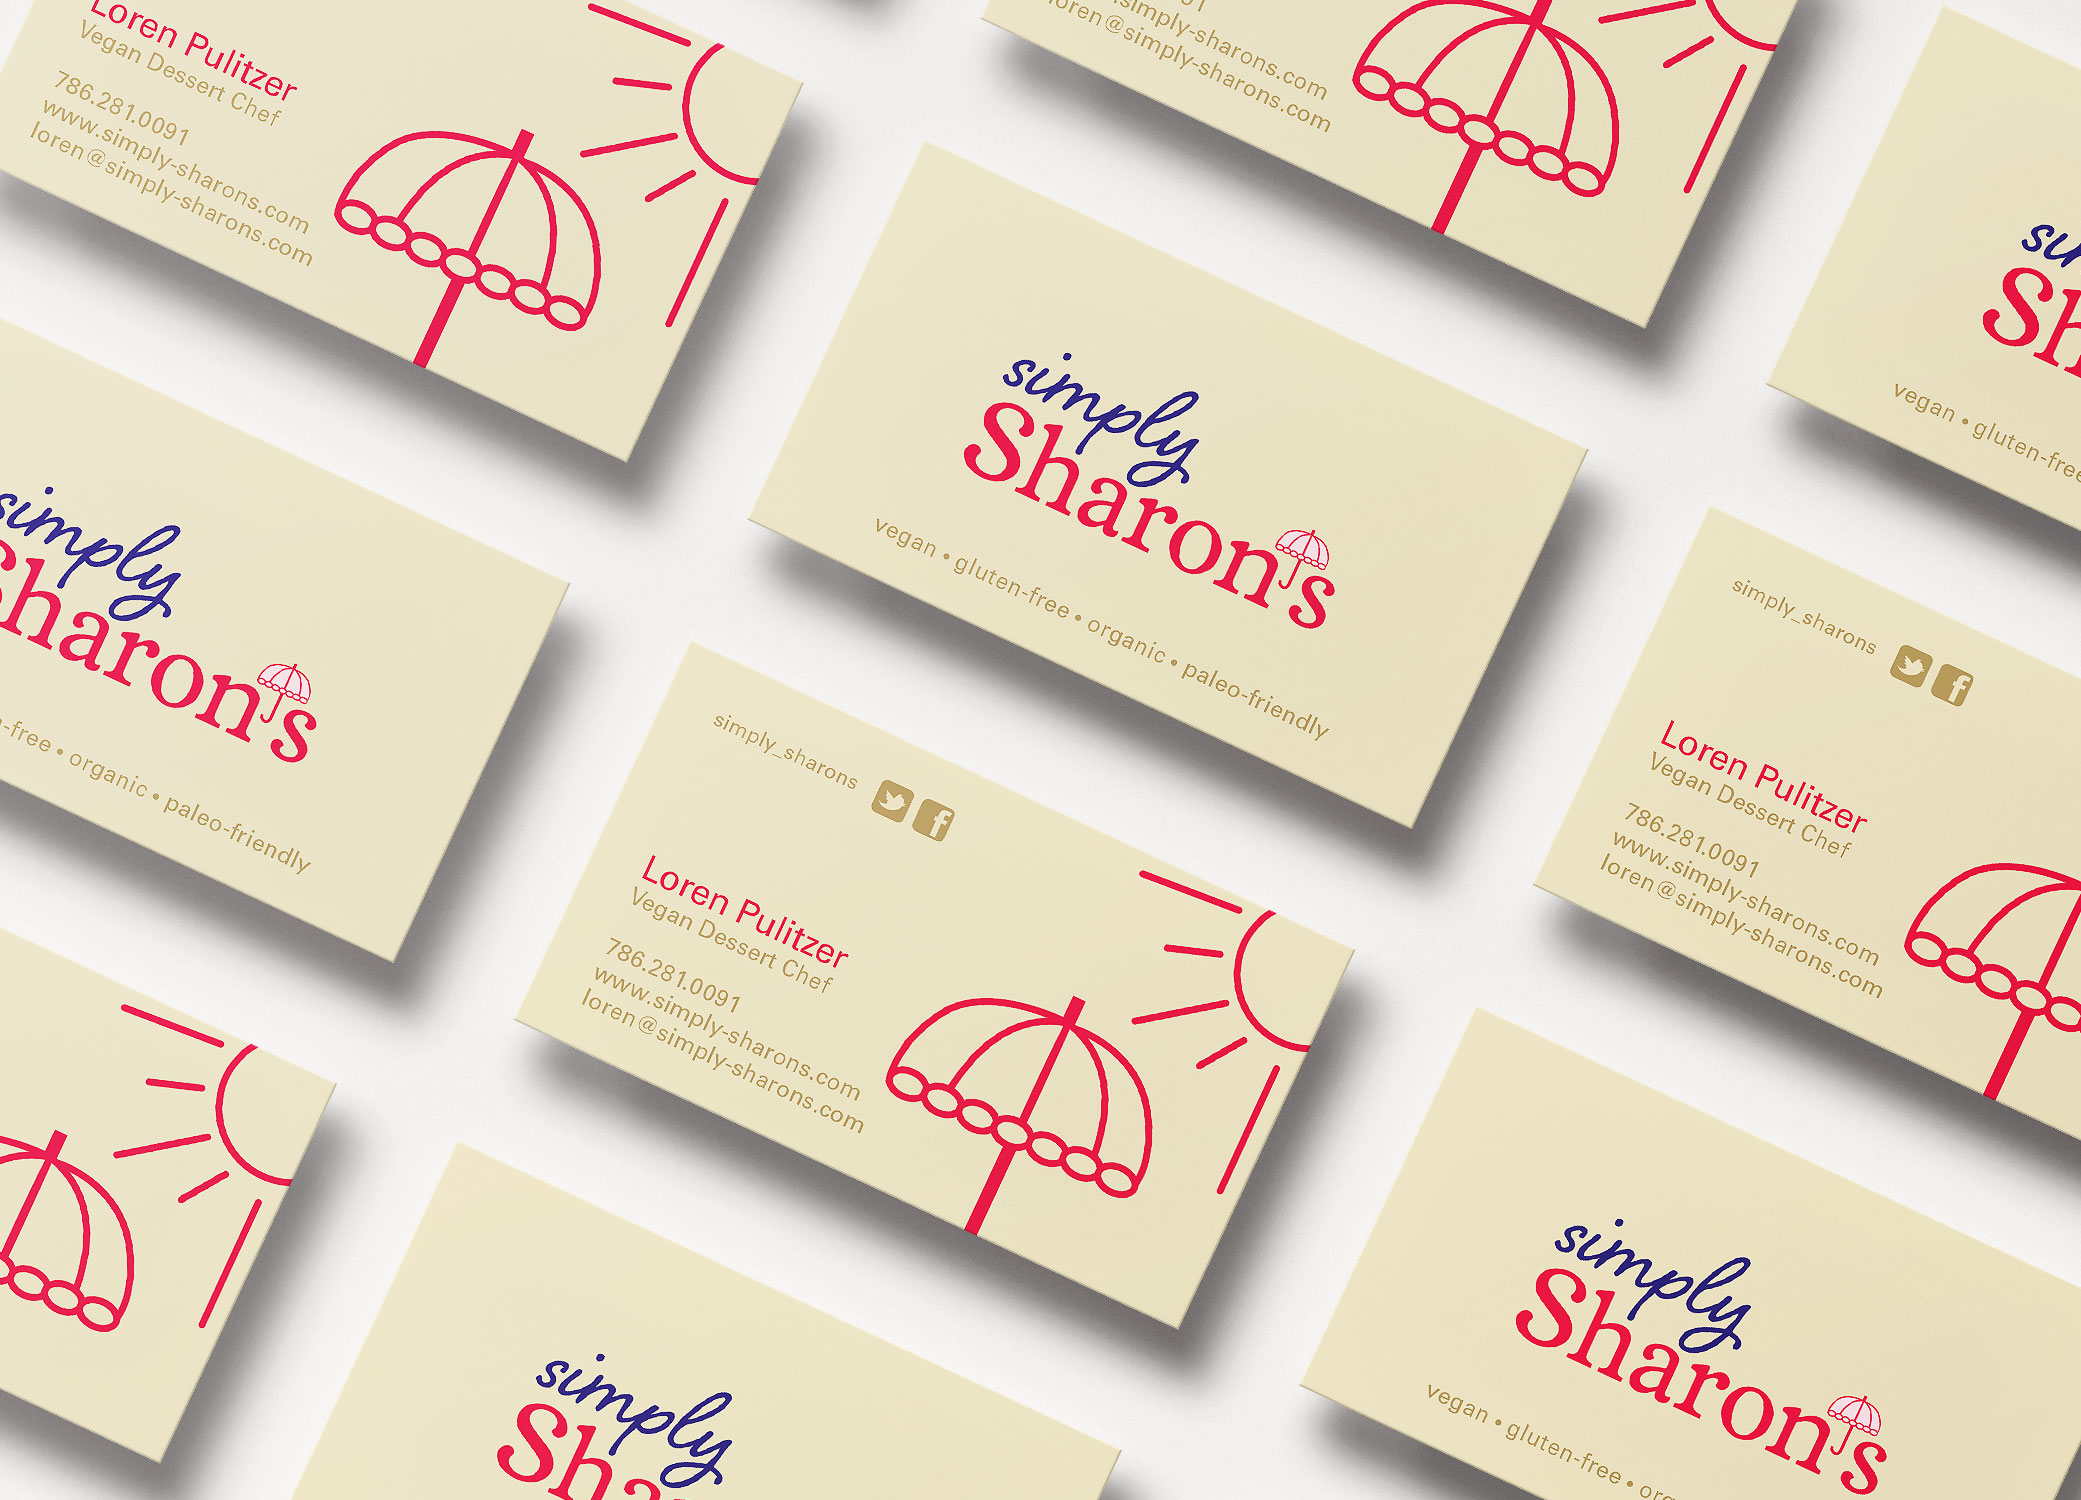 Simply Sharon's business cards in warm beige with red design elements, arranged in diagonal rows to show front and back.